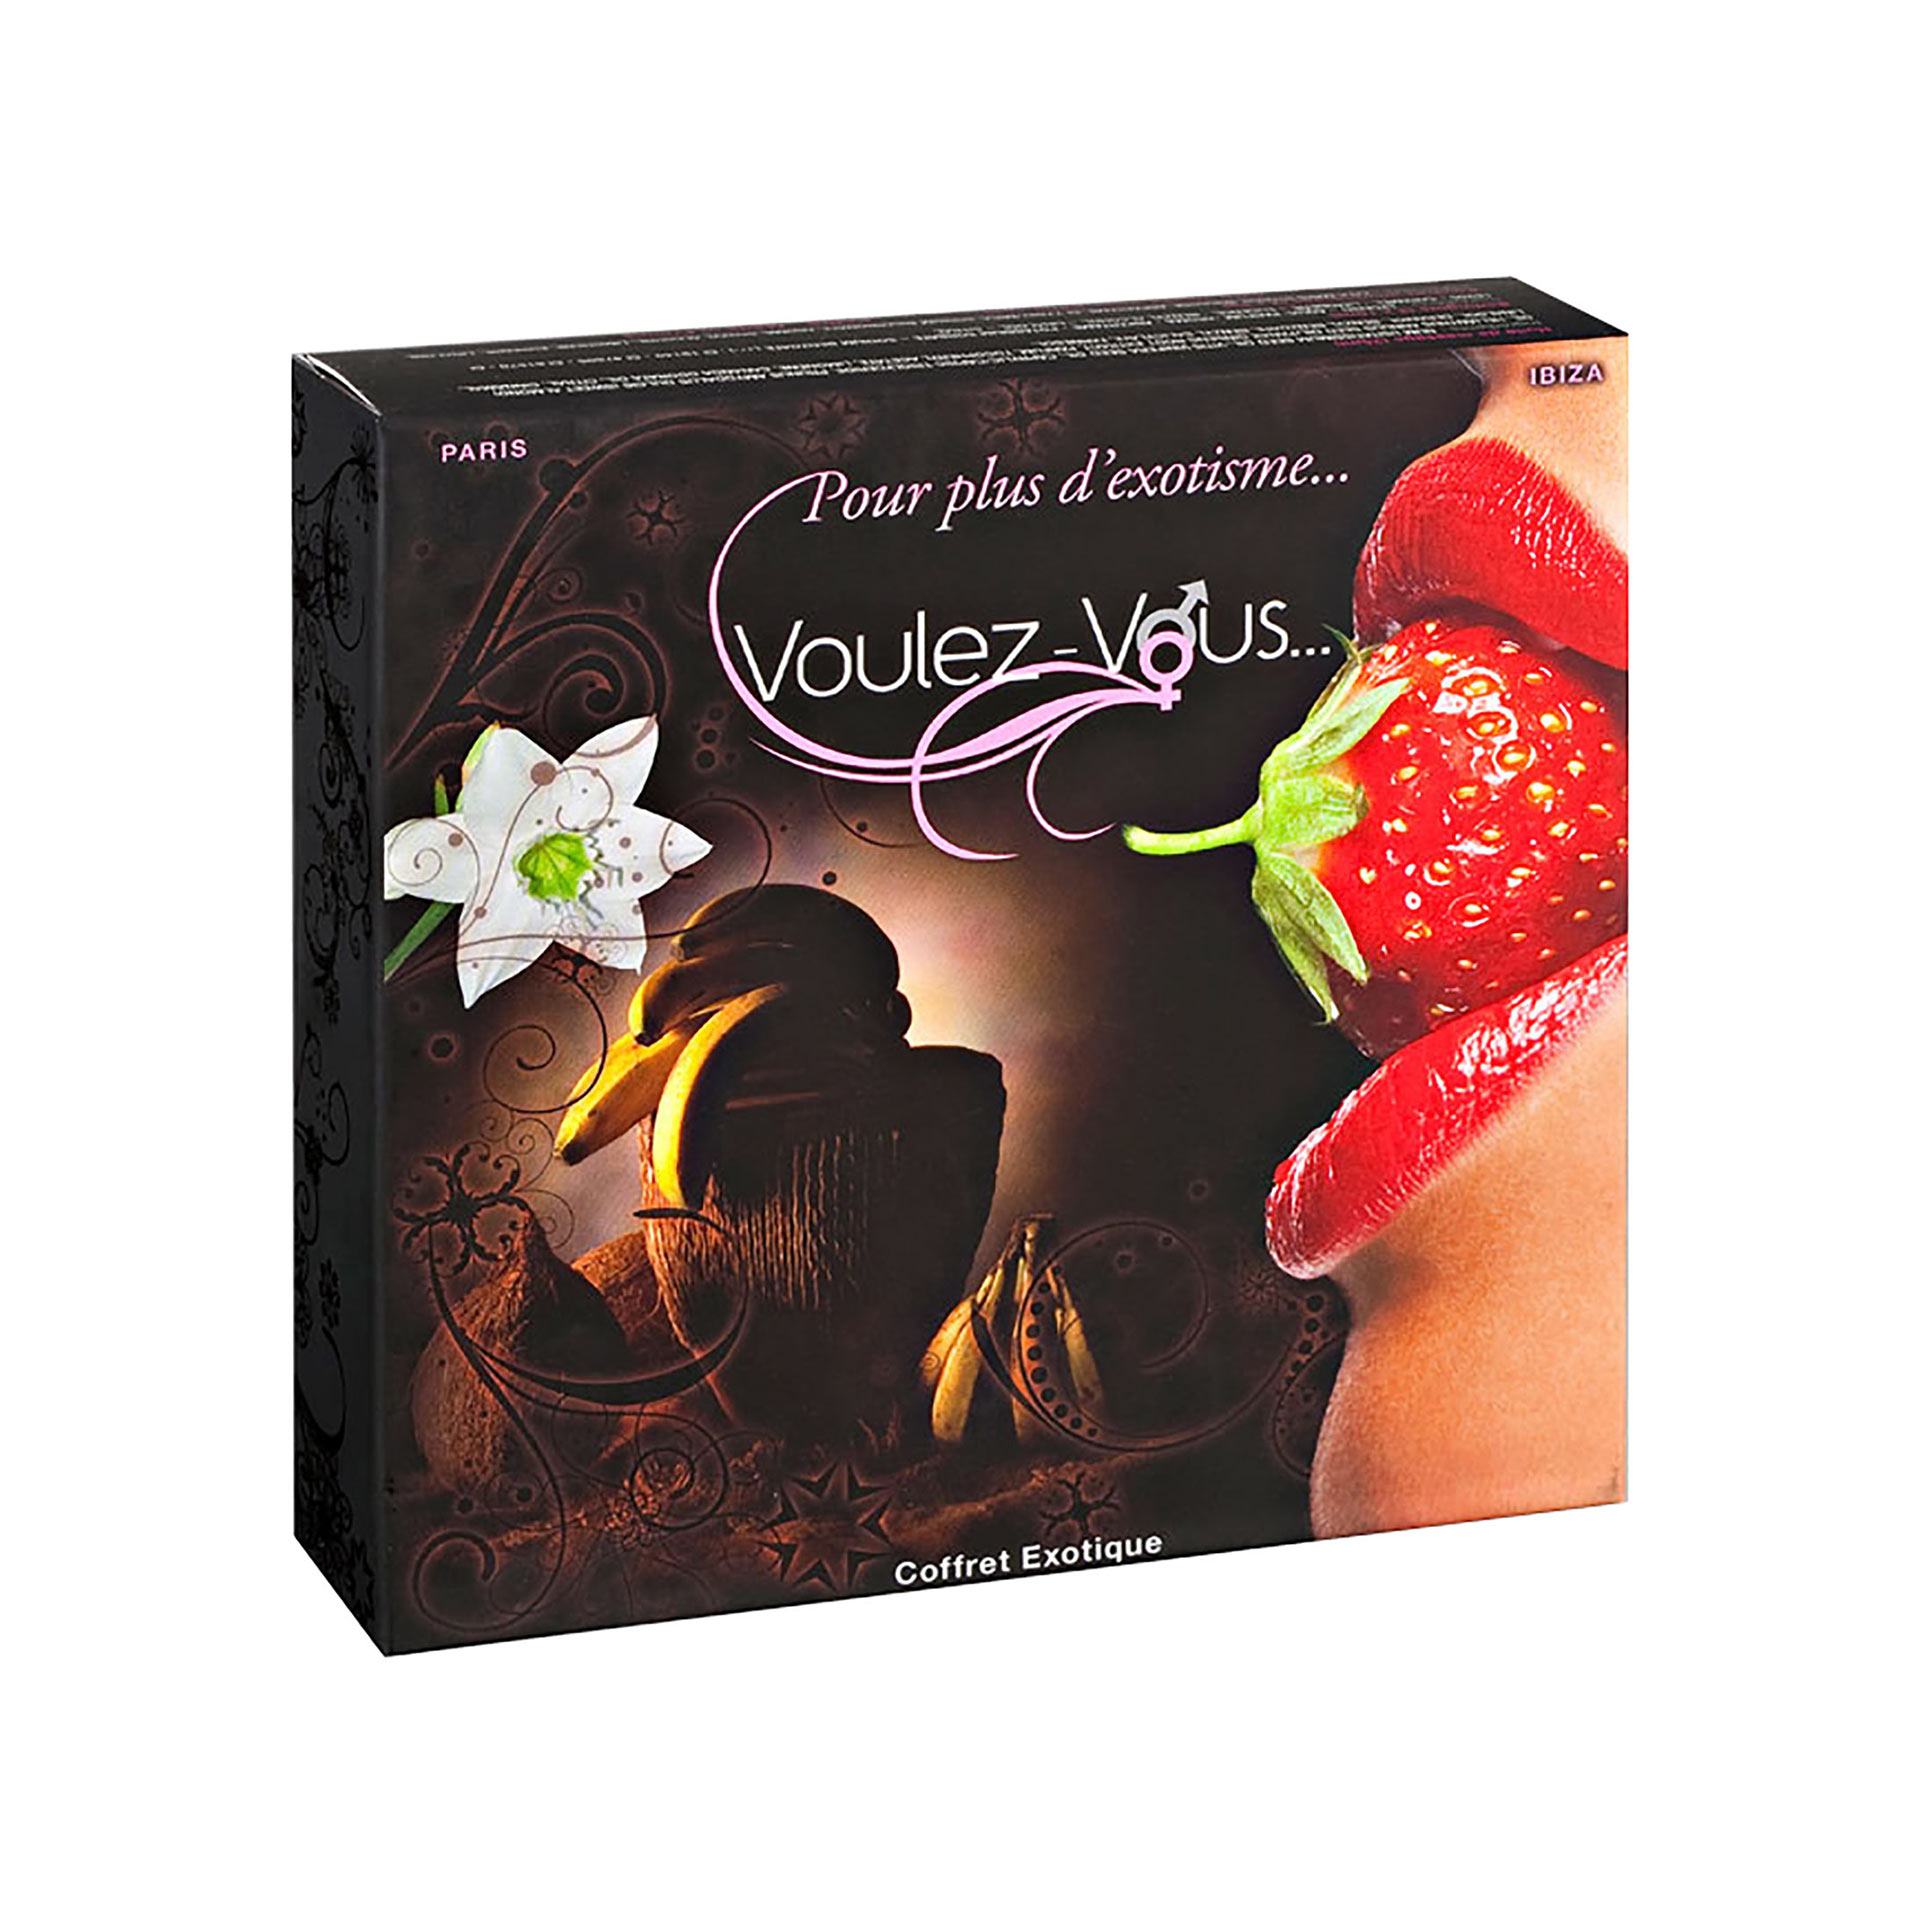 Coffret Exotics de Massage